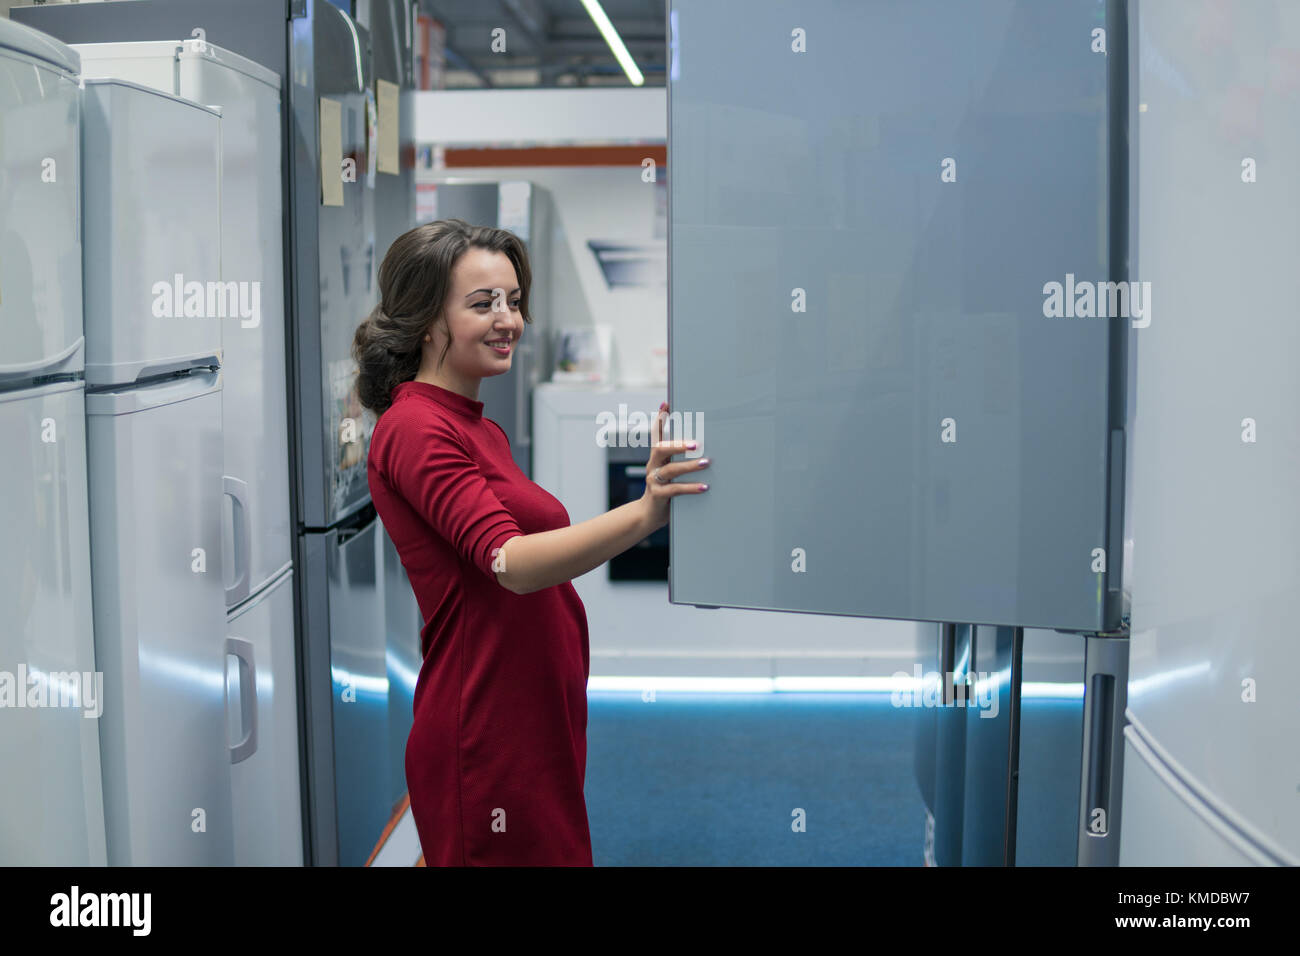 housewife choosing large fridges in domestic appliances section - Stock Image